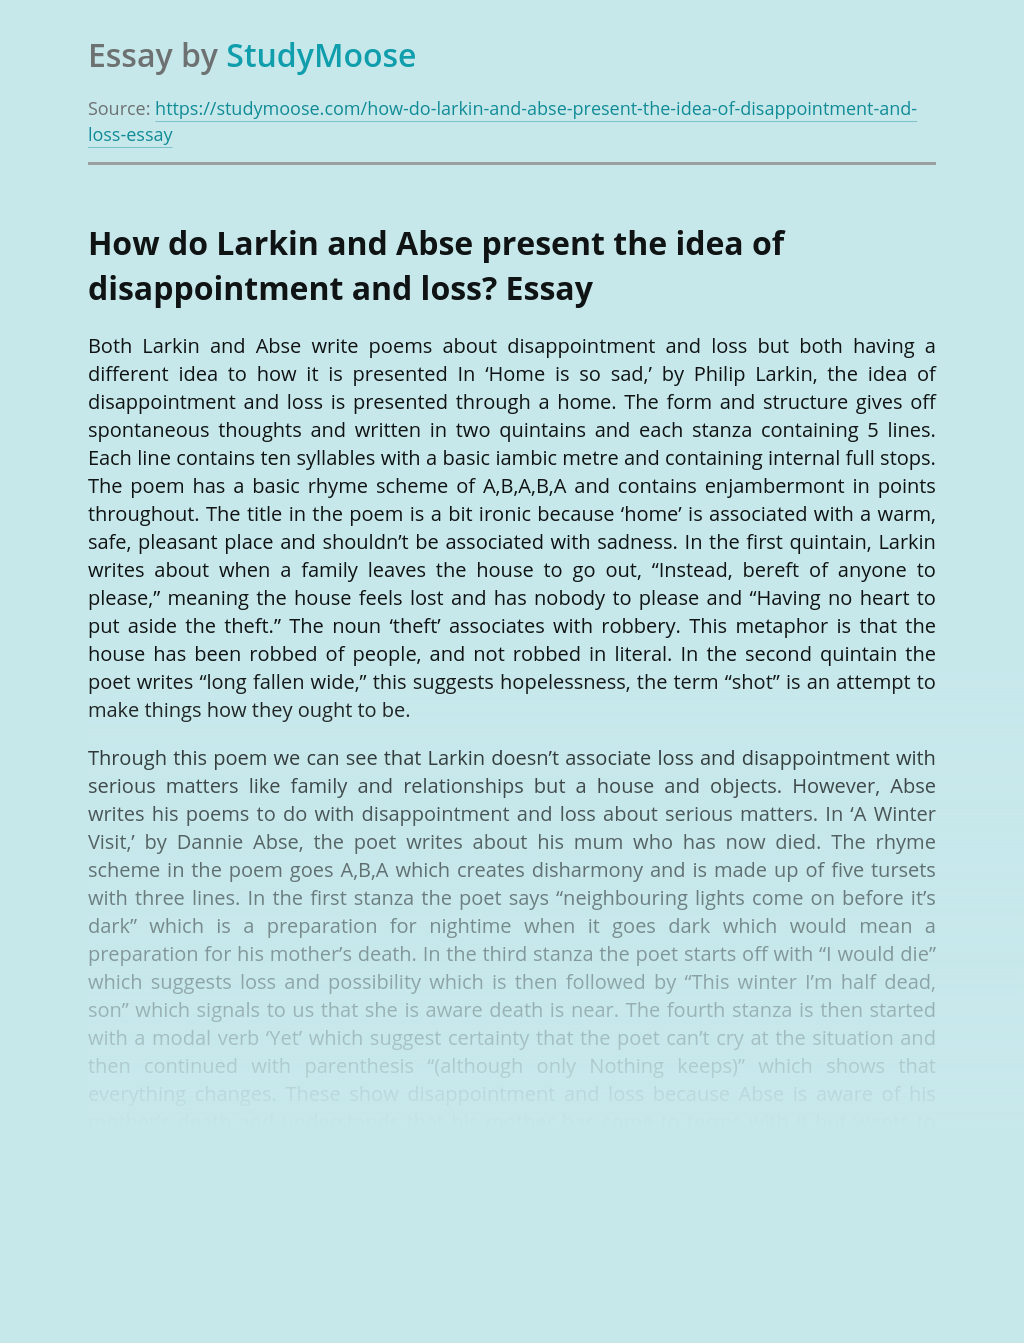 How do Larkin and Abse present the idea of disappointment and loss?